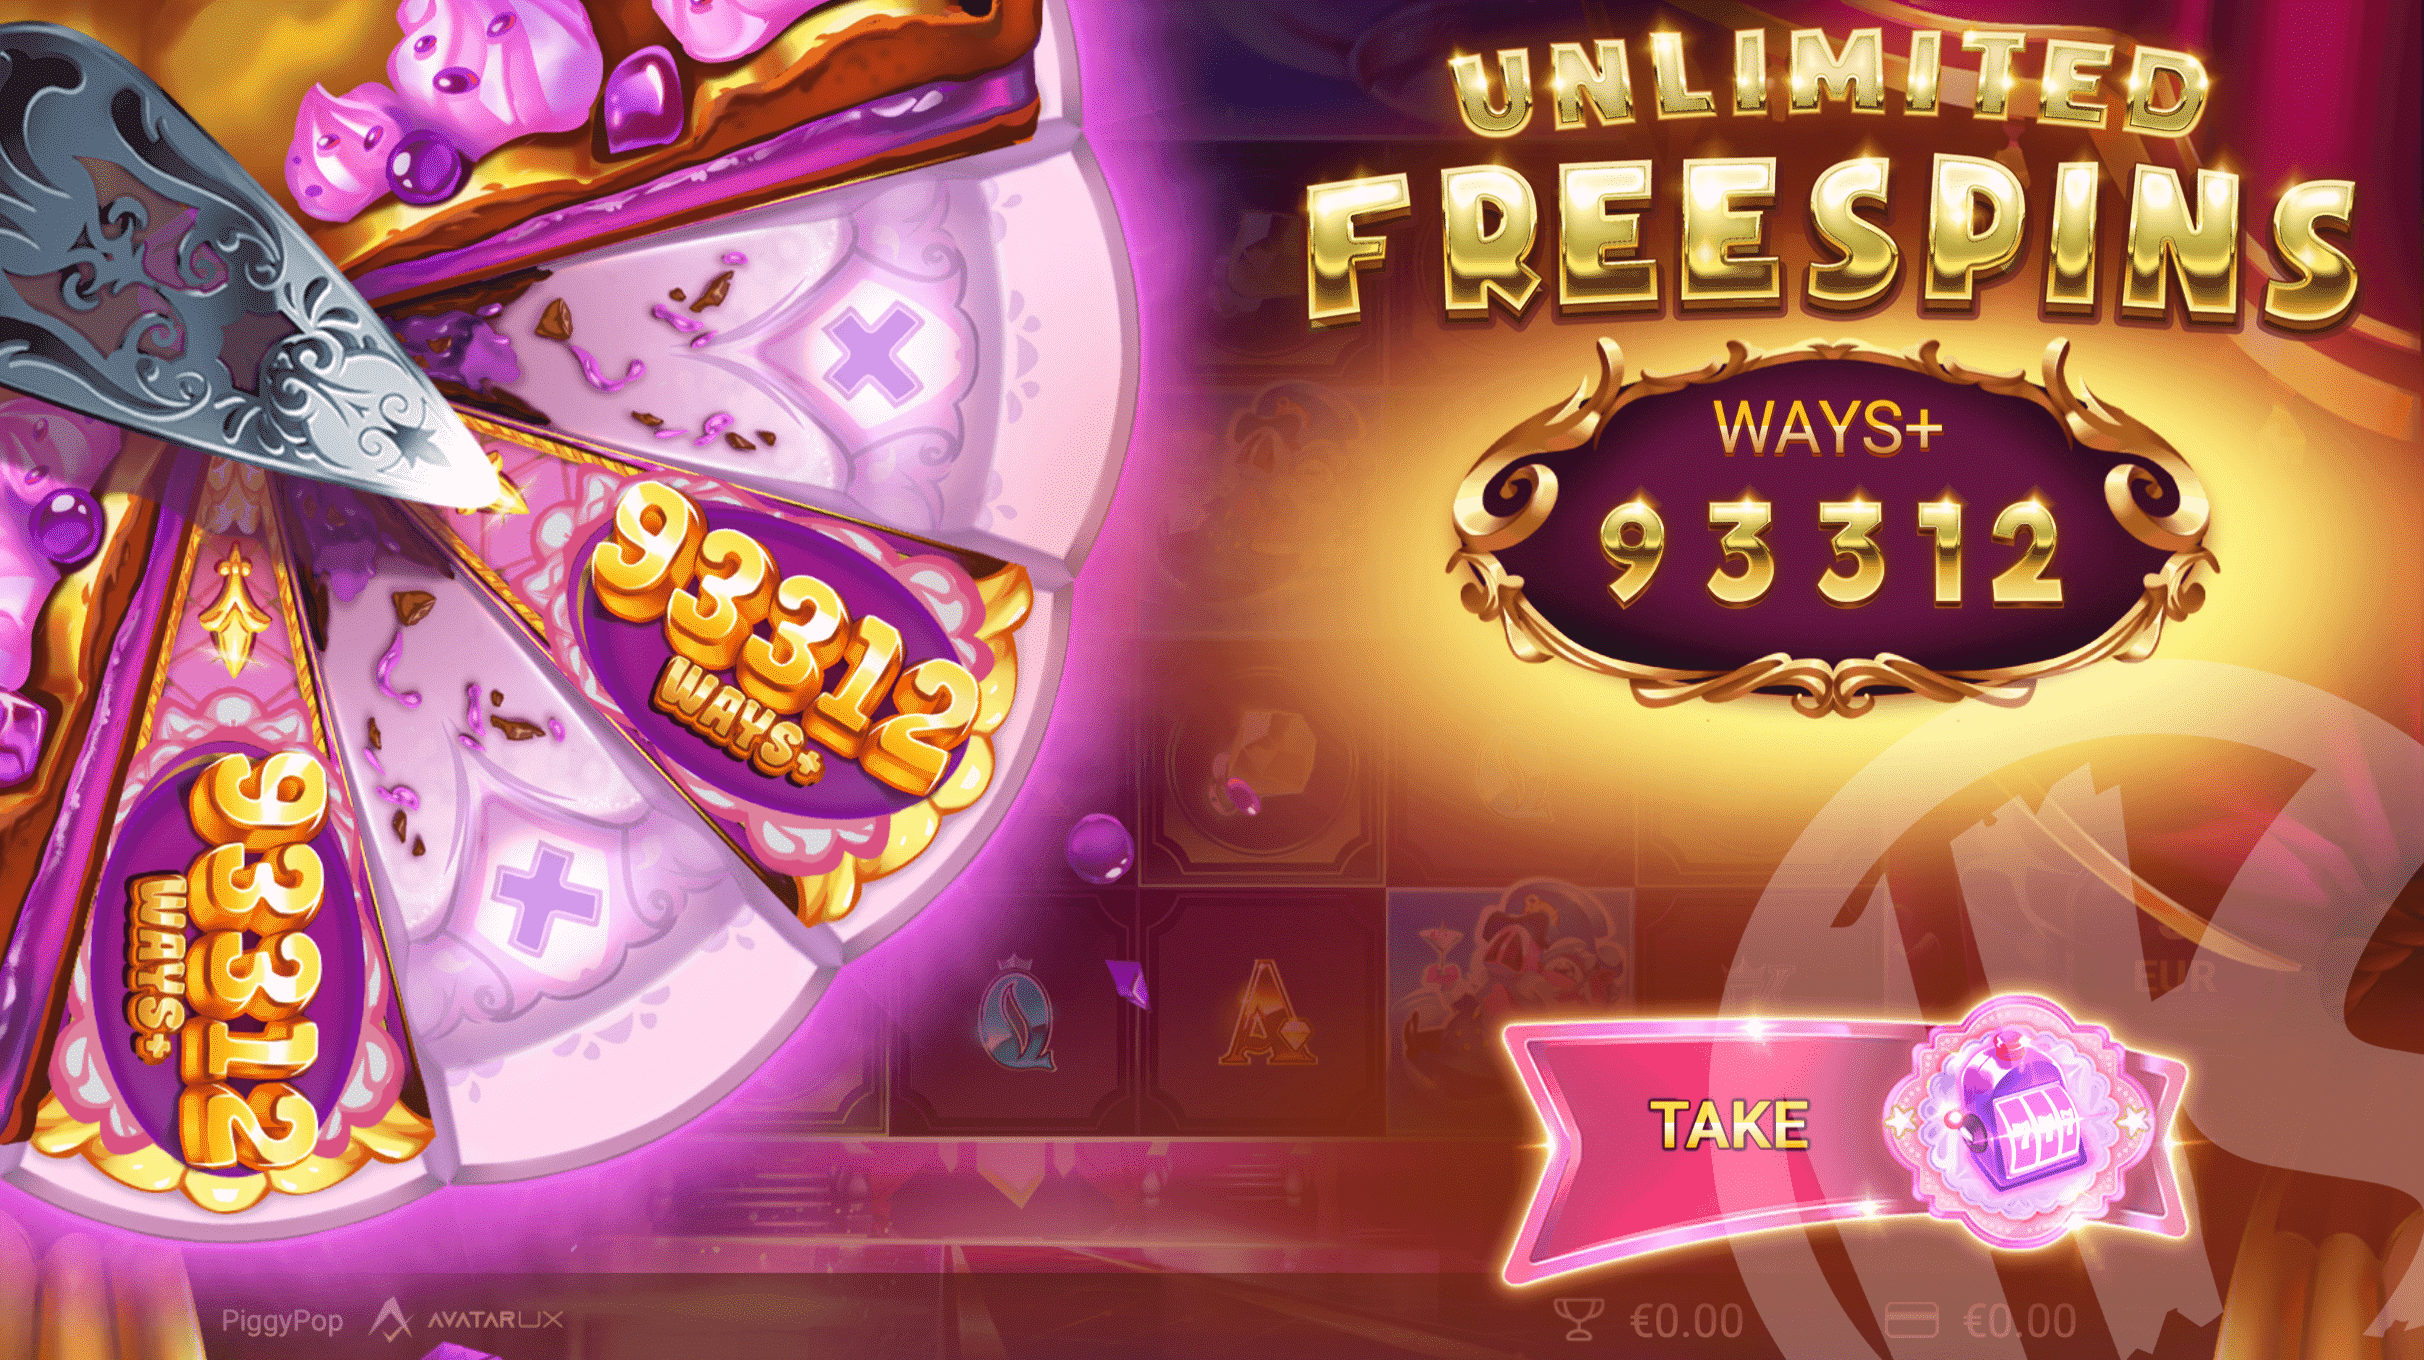 Gamble up to 93,312 Minimum Ways During Unlimited Free Spins